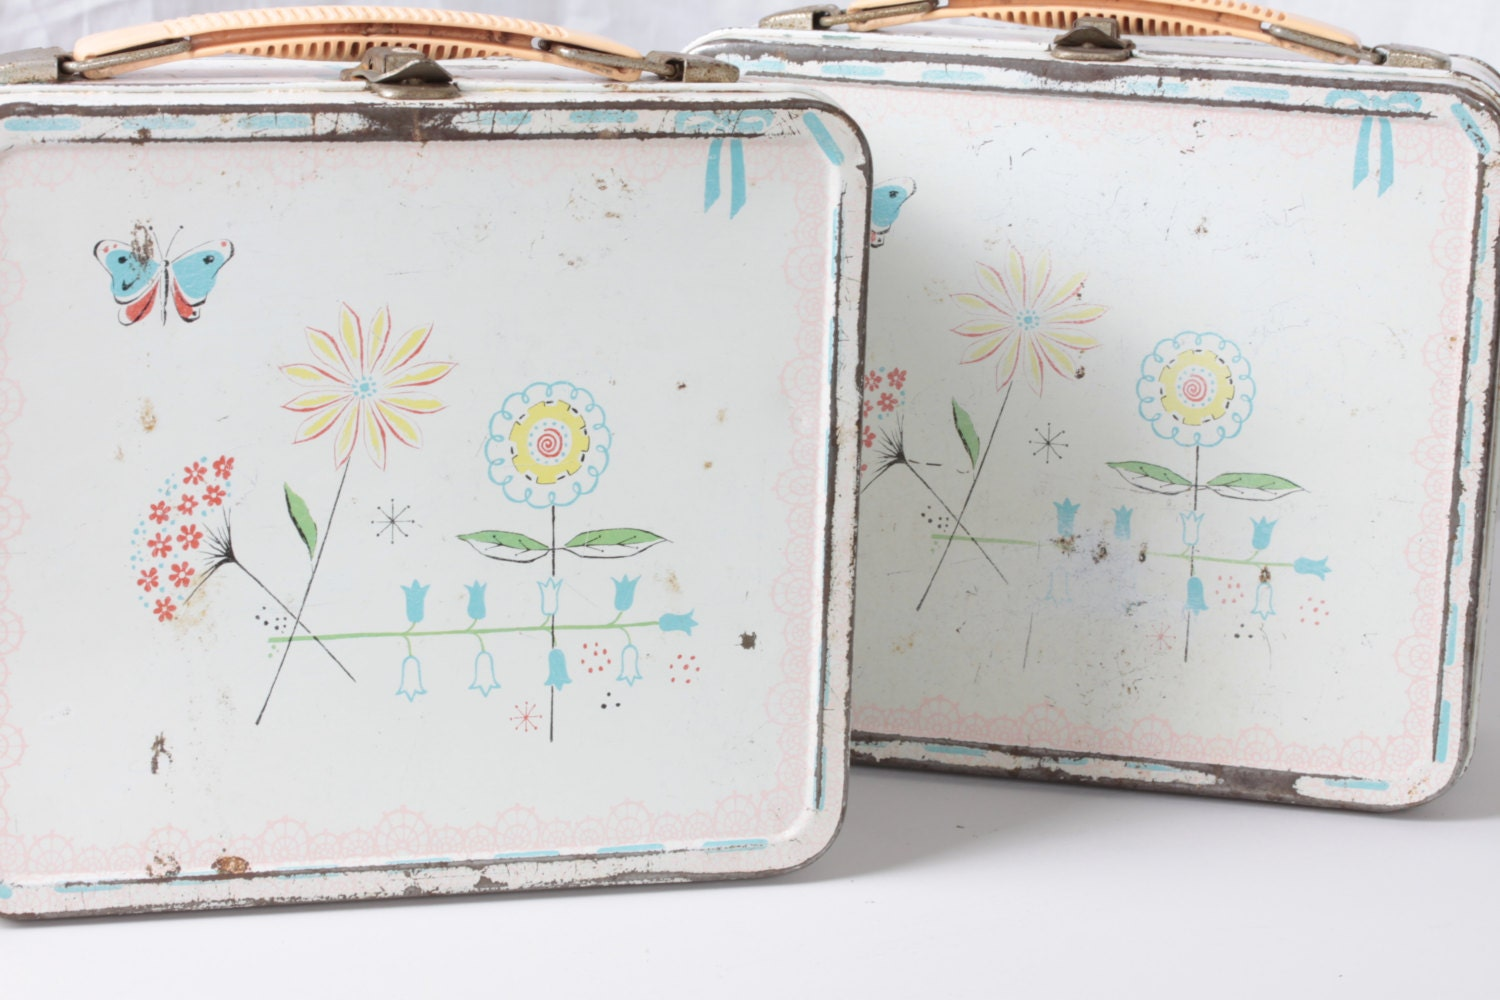 Retro 1950 Aladdin Jr. Miss Lunch Box with Butterflies and Abstract Flowers - Fleaosophy